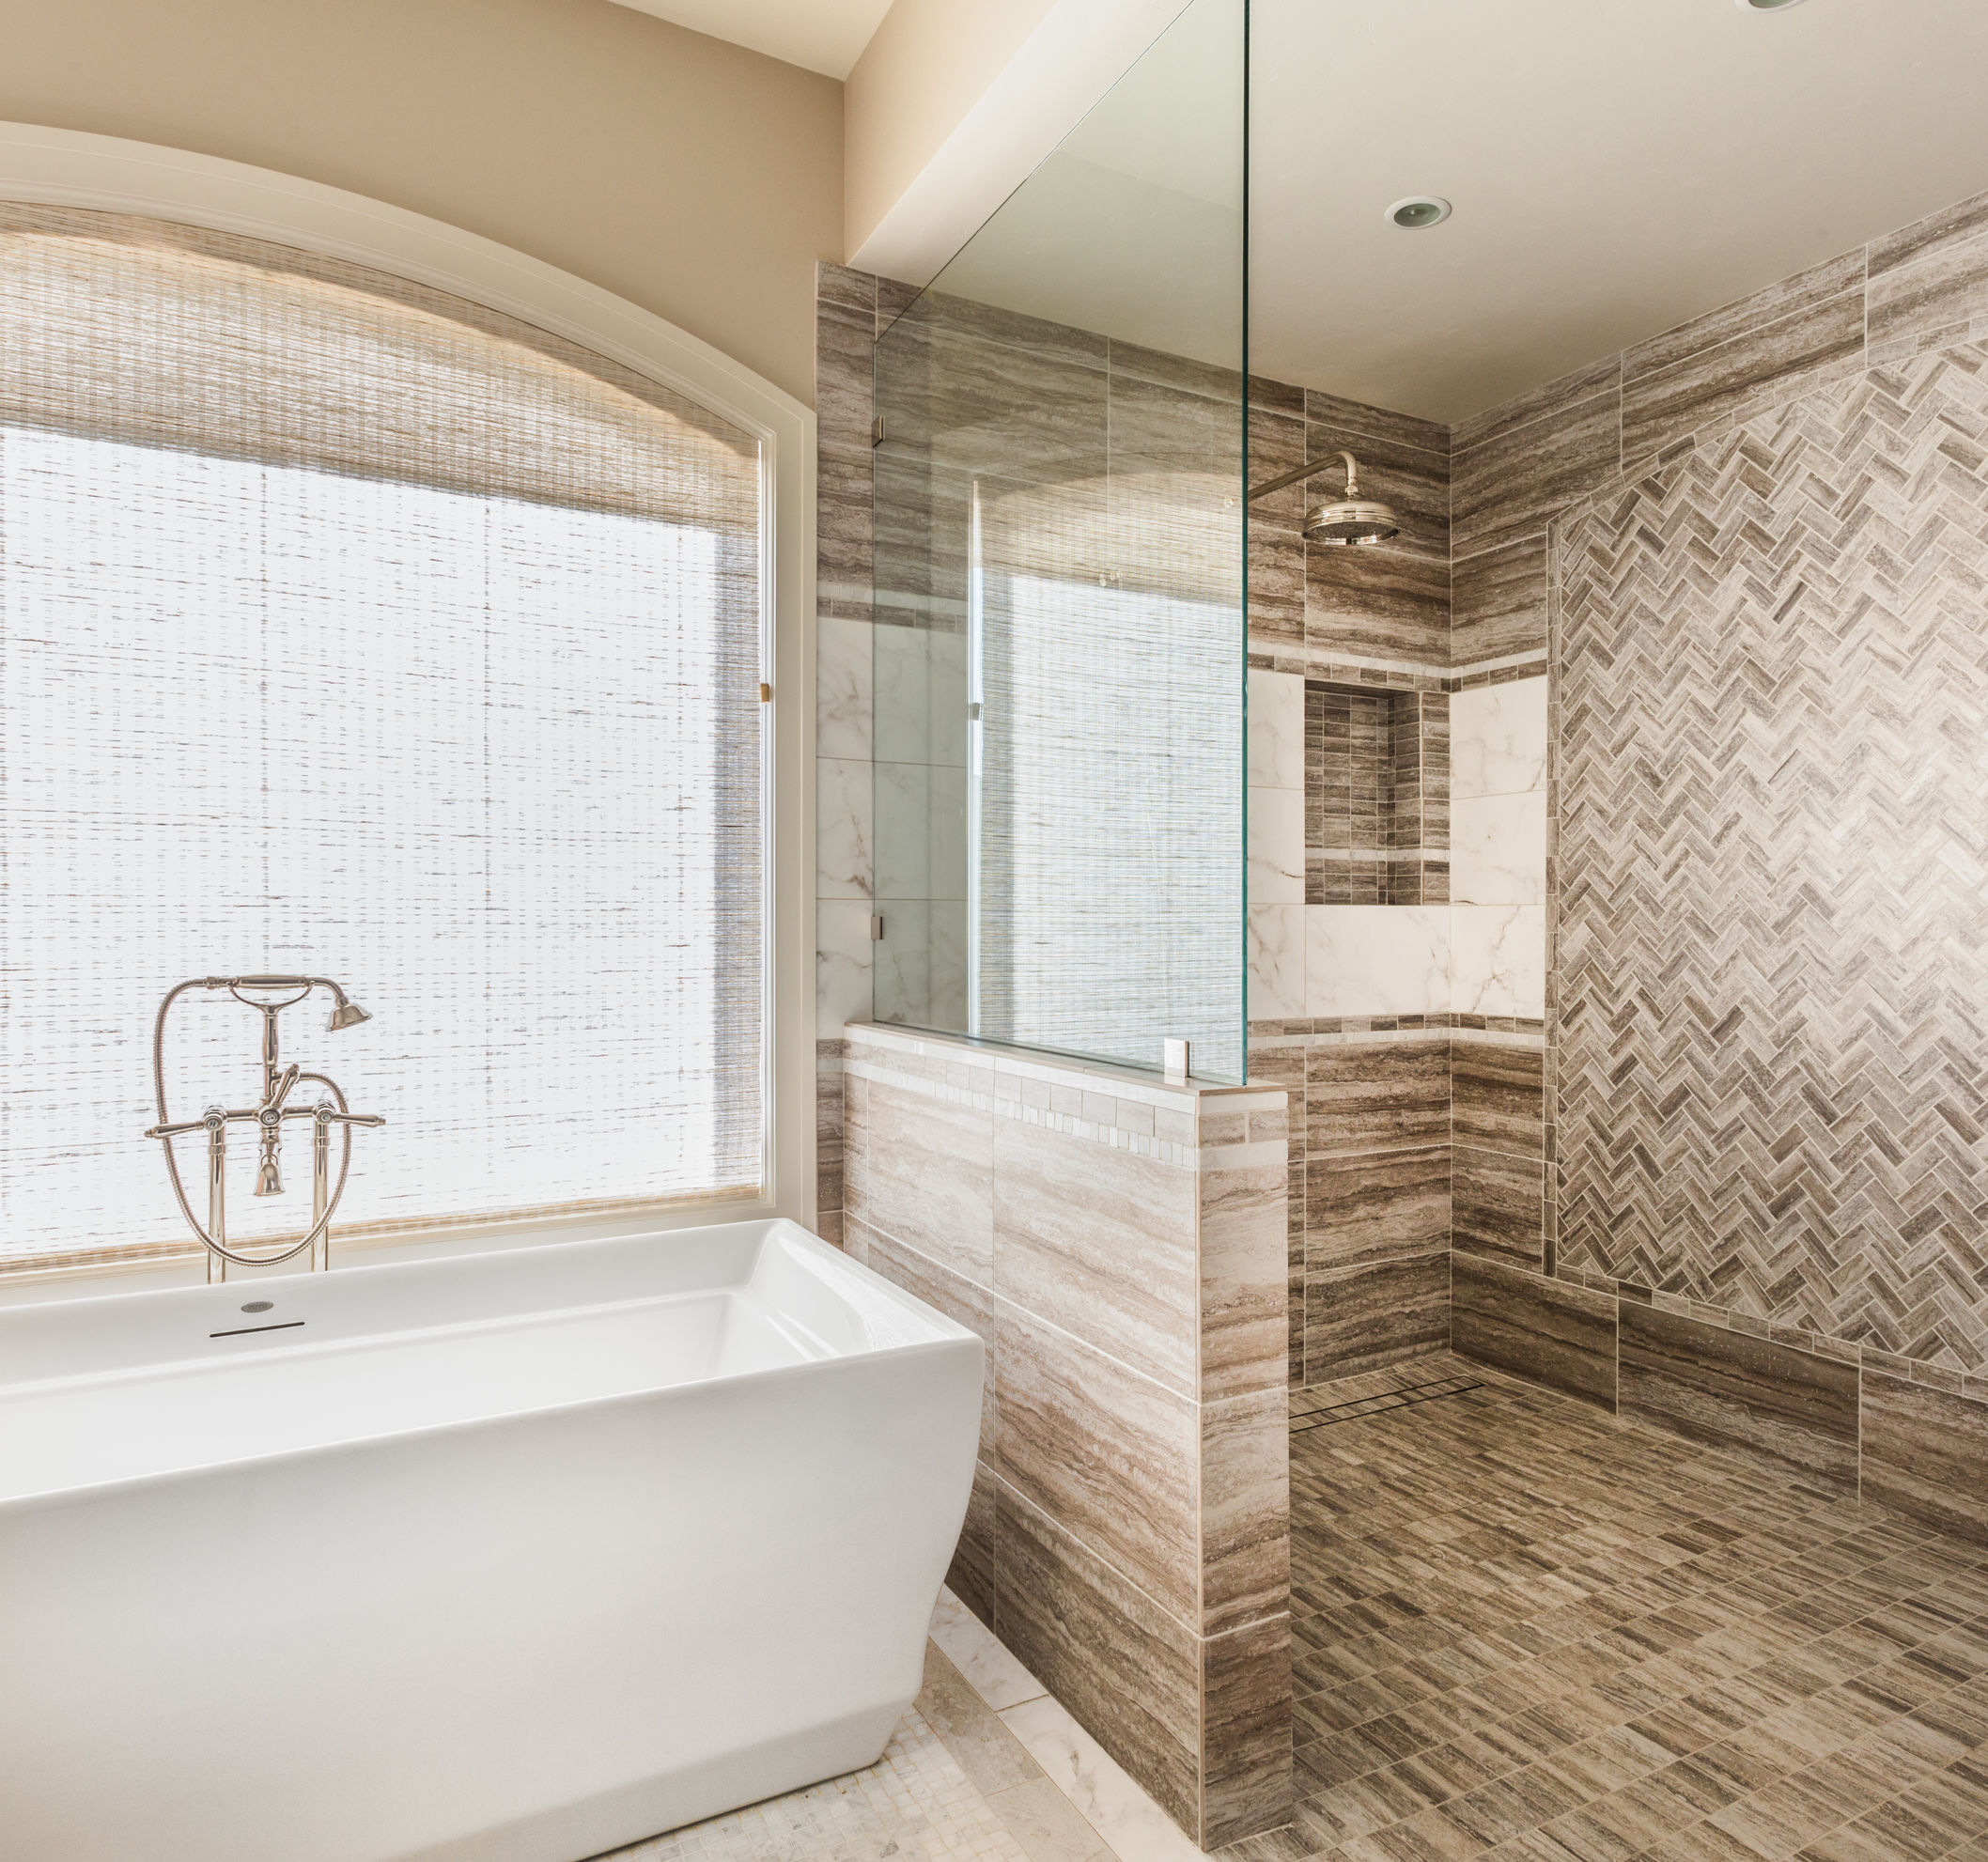 5 Natural Stone Shower Cleaning Tips – Do this and staying clean is EASY - Post